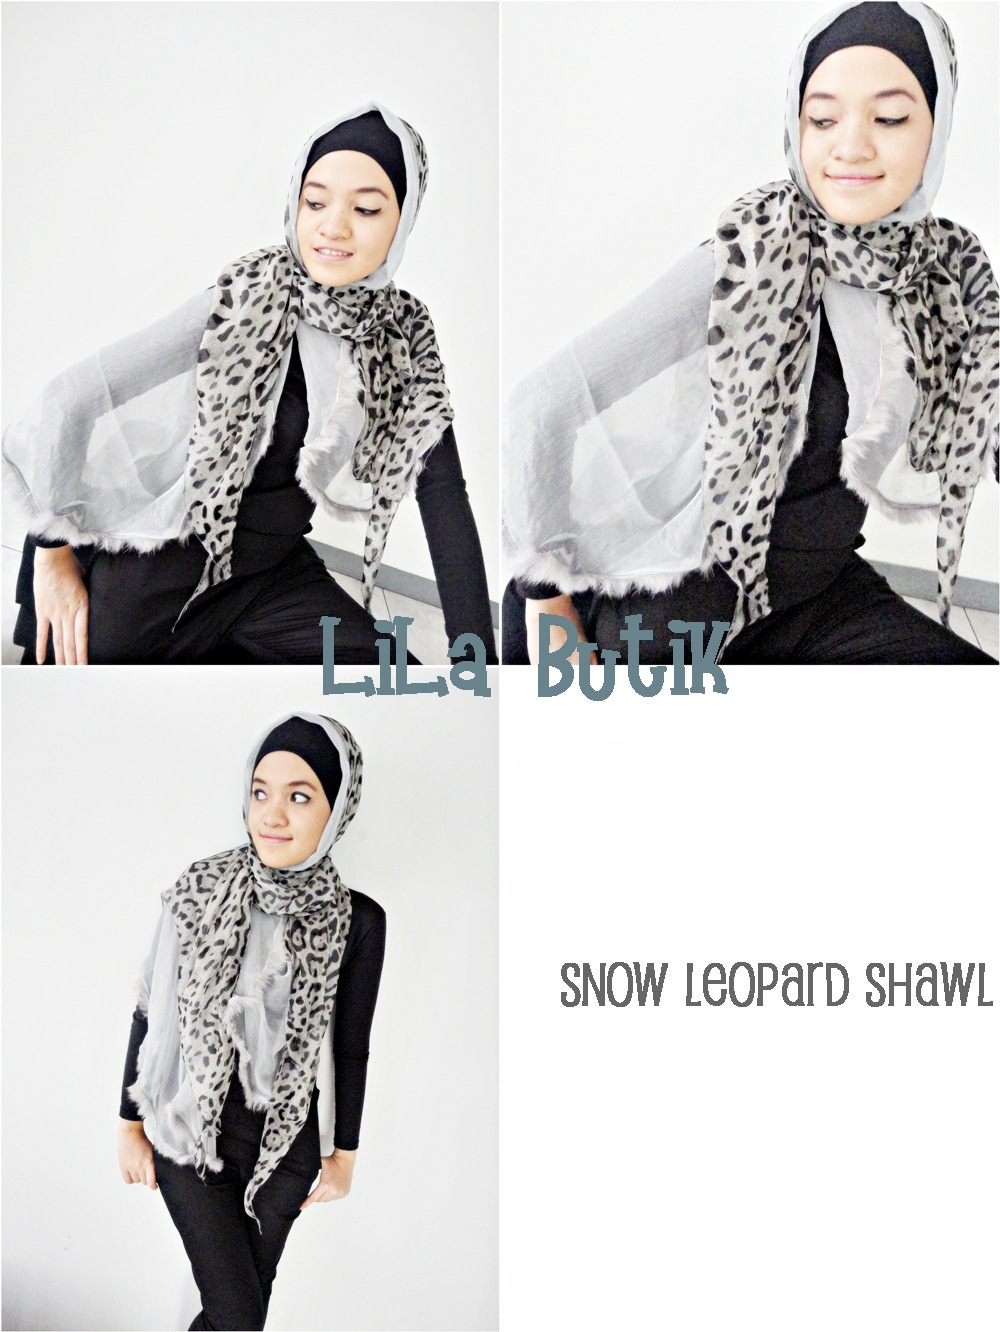 snow-leopard LiLa Butik: Me and My Friend's On-and-Off Online Shop (^____^)v